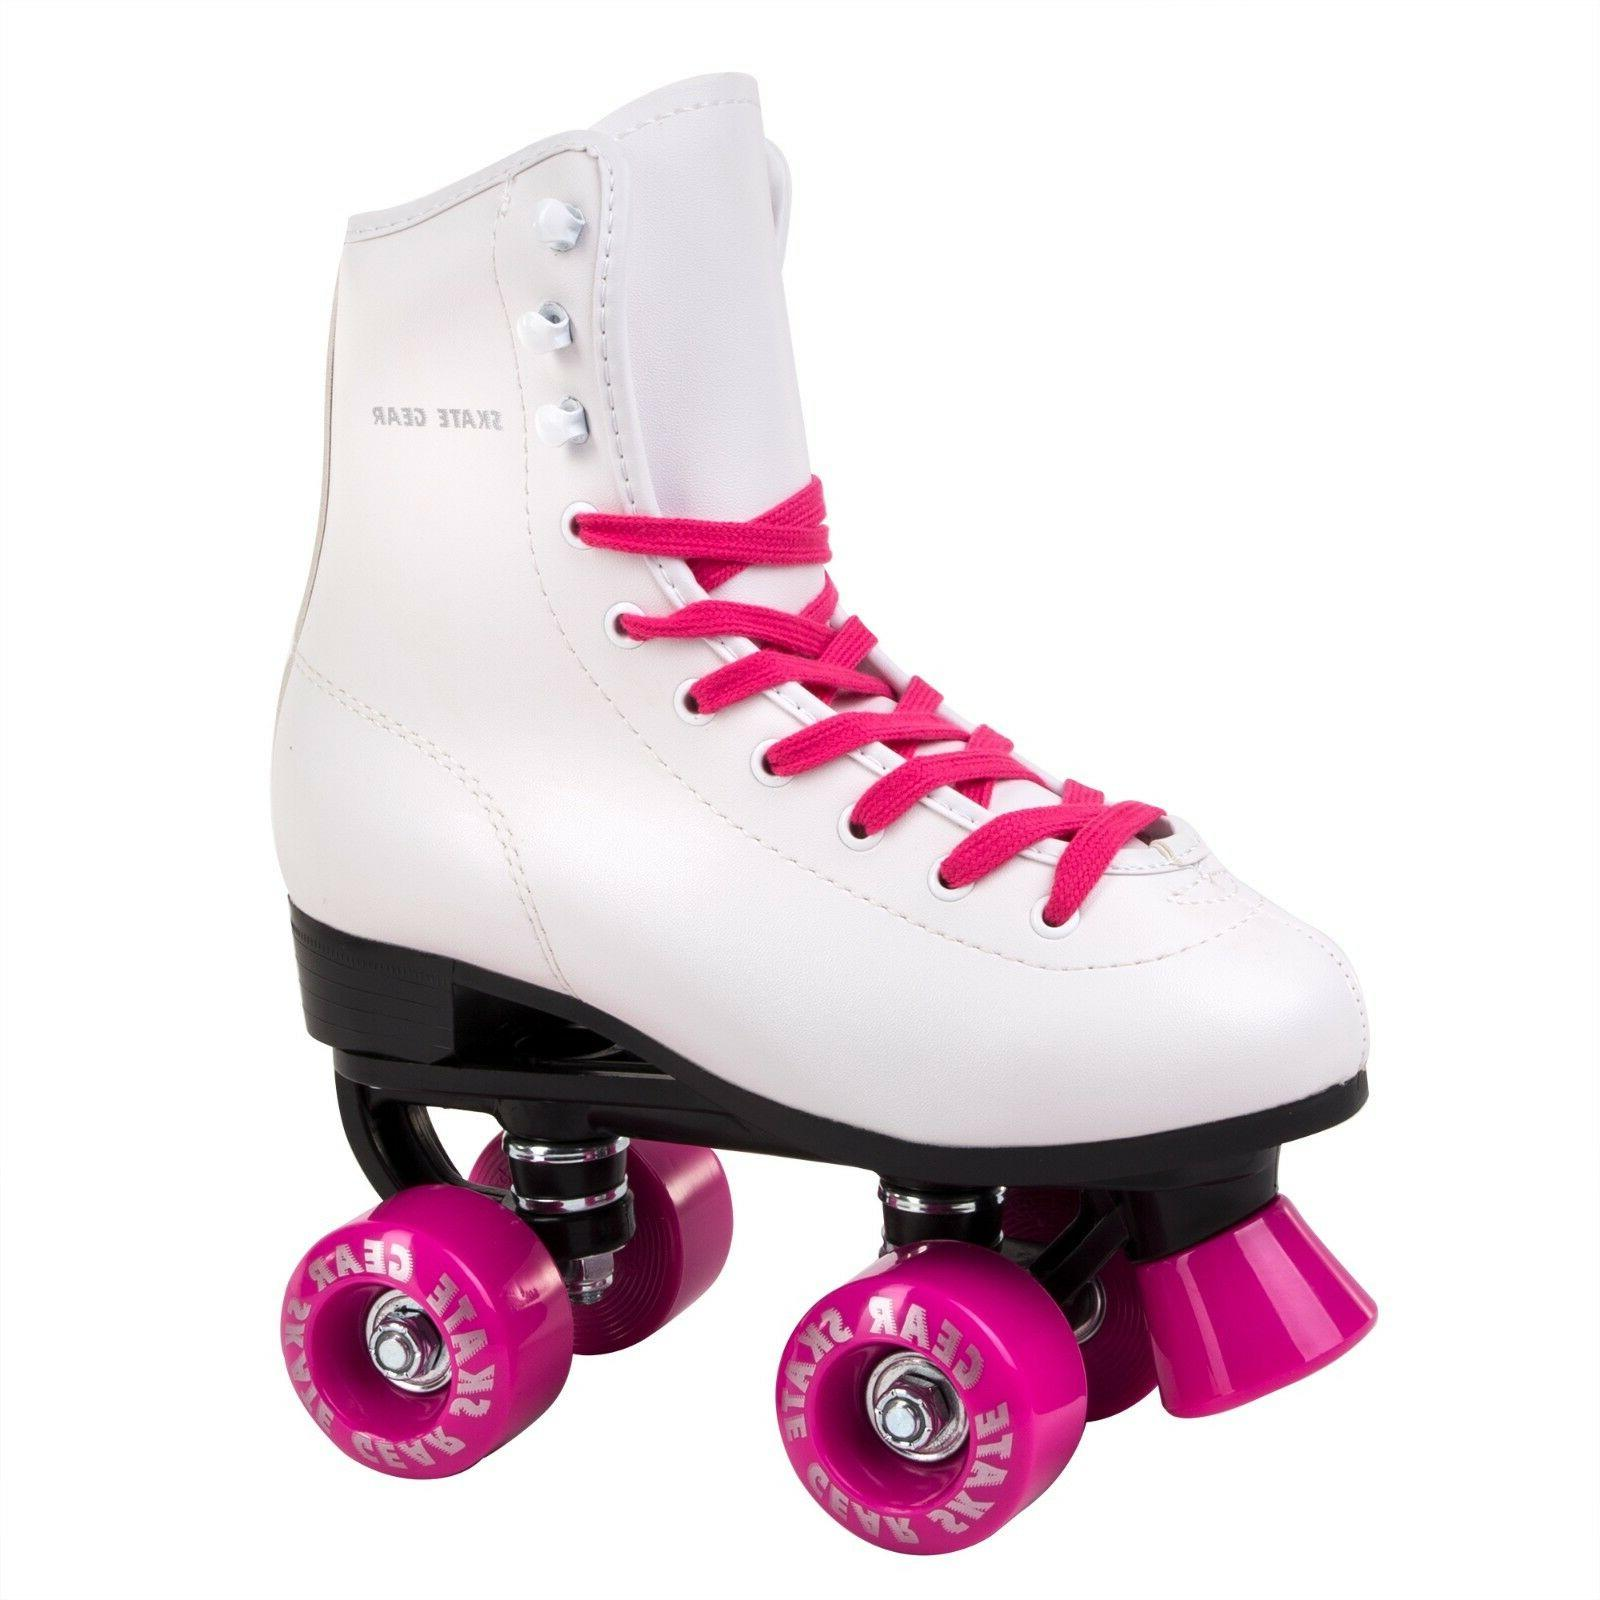 Skate Gear Soft Boot Roller Skate Retro High Top Indoor Outd